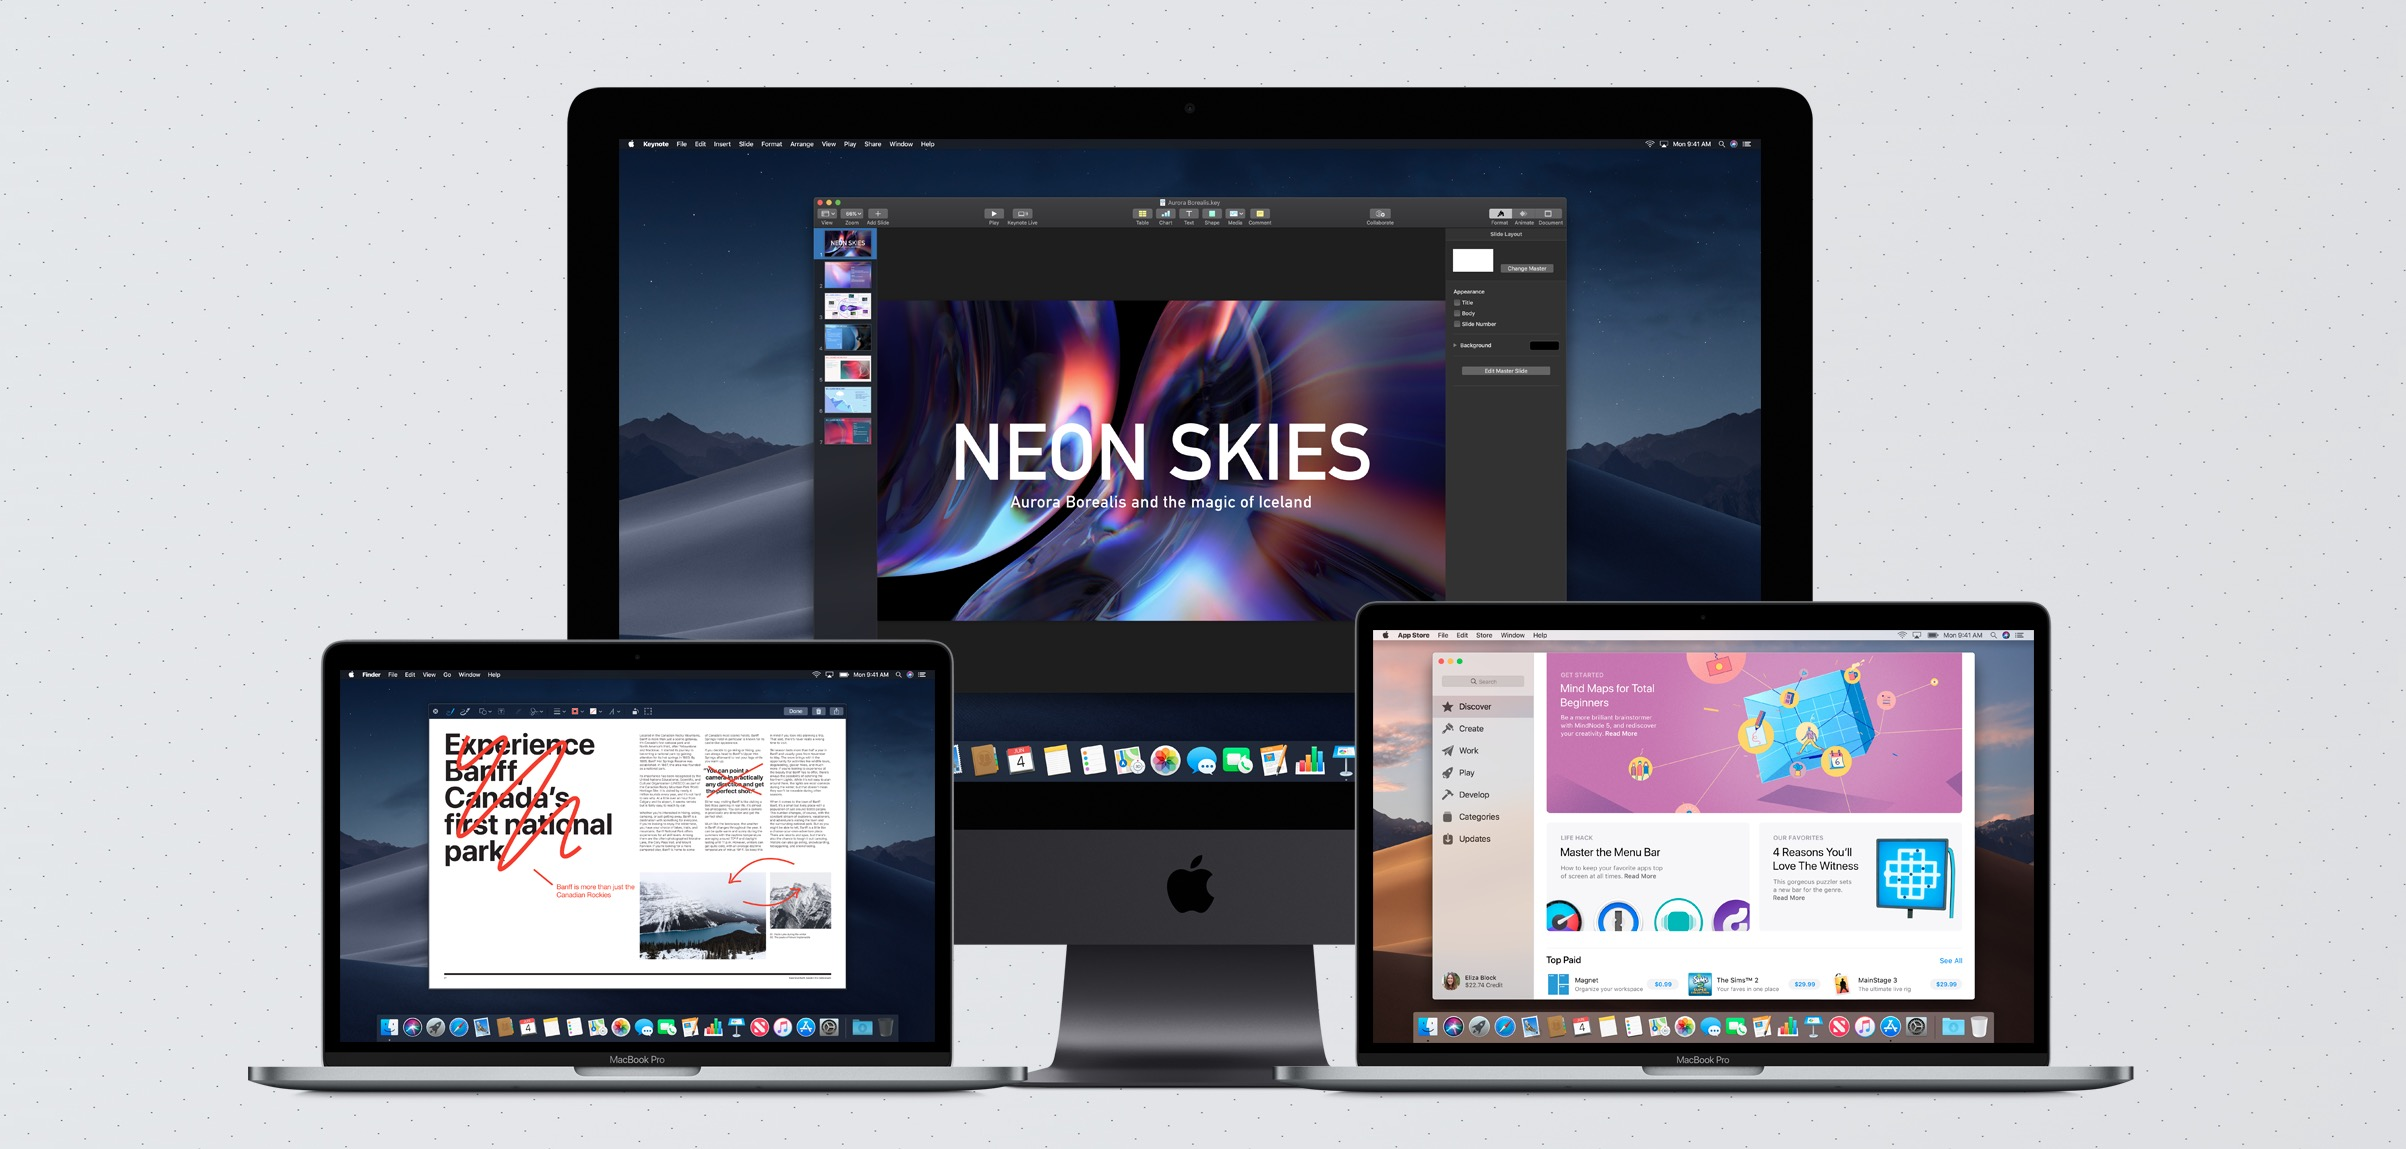 Common macOS Mojave Beta Problems & How to Fix Them